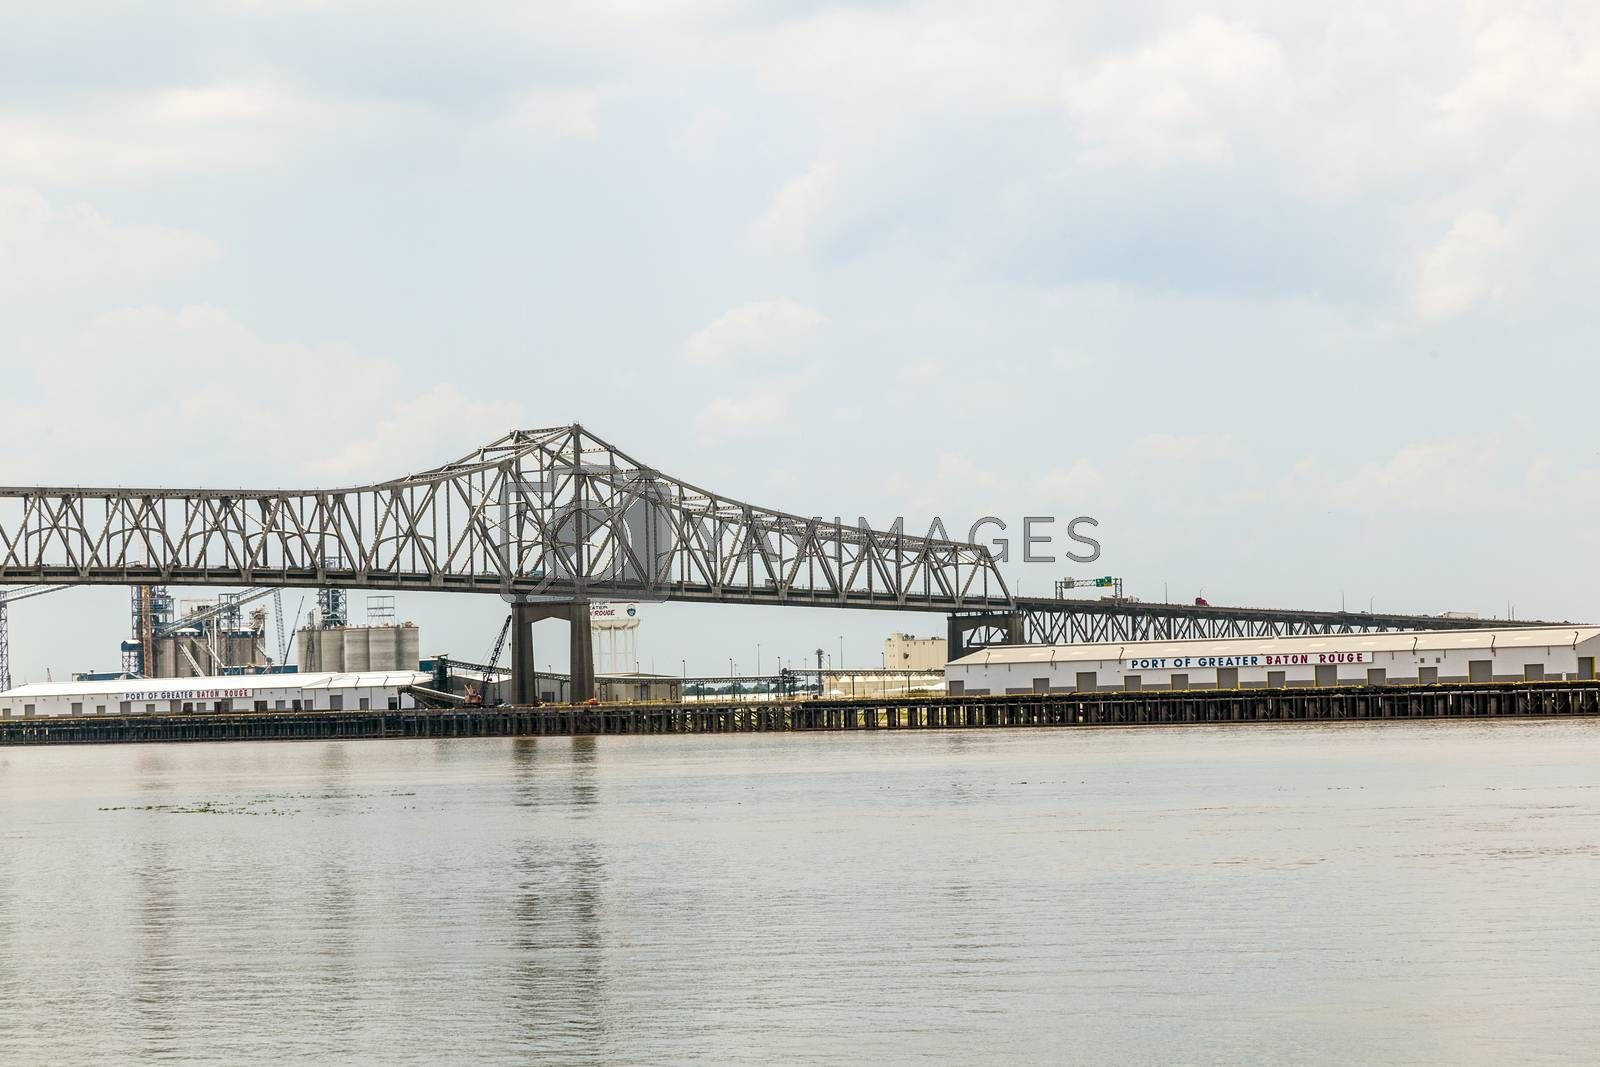 BATON ROUGE - JULY 13, 2013: Mississippi River Bridge in Baton Rouge, USA. The Horace Wilkinson Bridge is a cantilever bridge carrying Interstate 10 in Louisiana across the Mississippi River. It is the highest bridge on the Missisippi River.